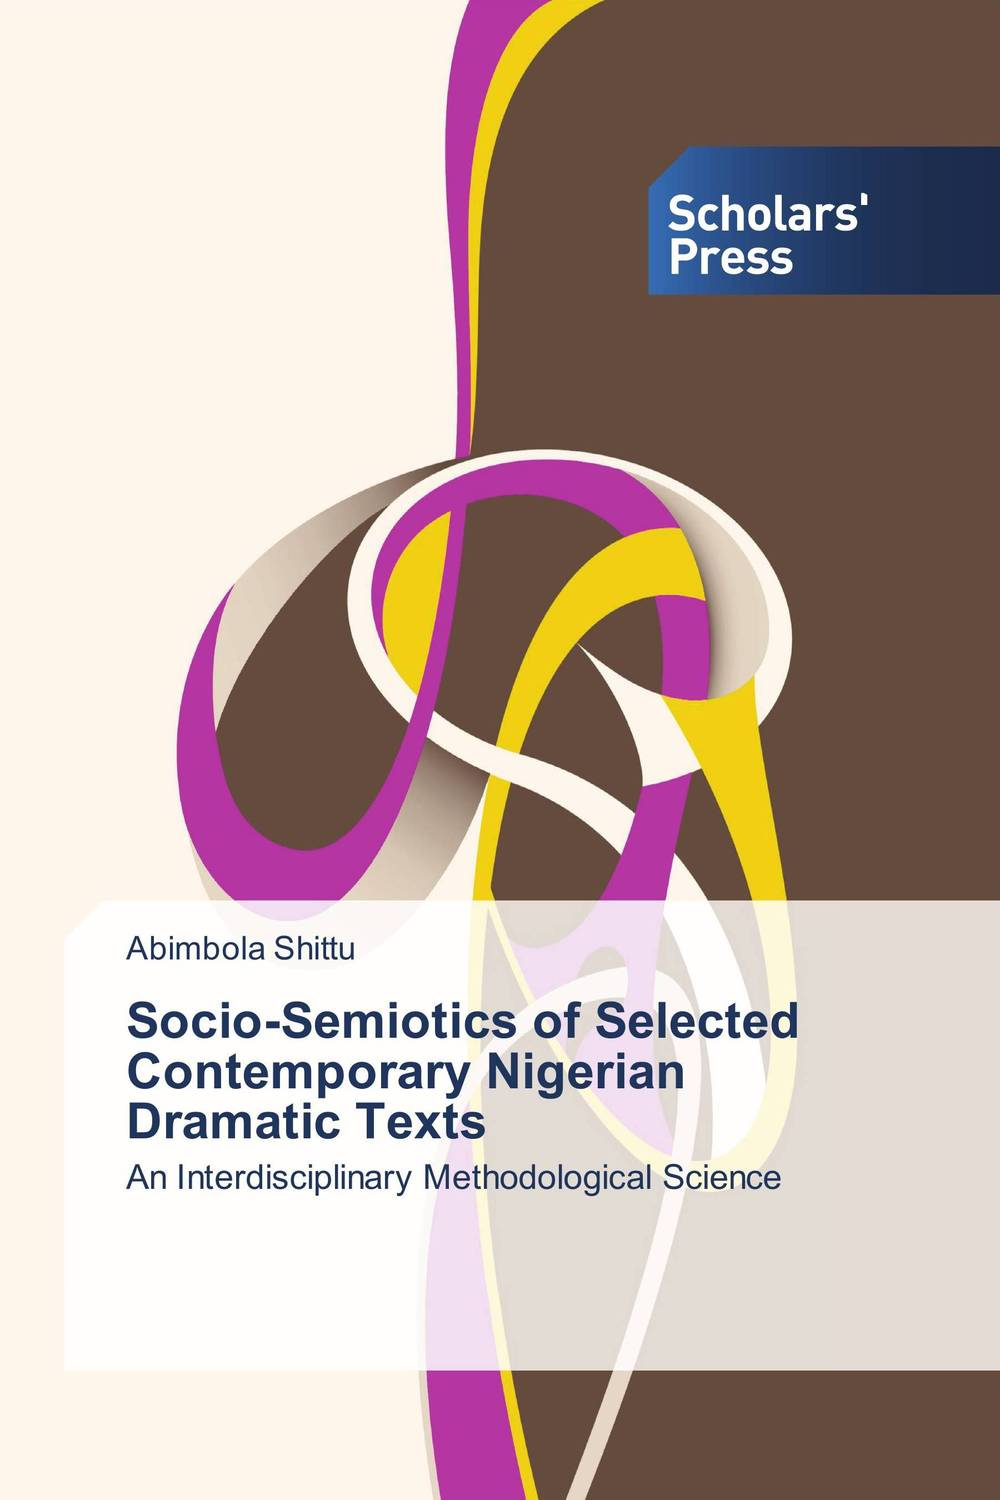 Socio-Semiotics of Selected Contemporary Nigerian Dramatic Texts adam smith the wealth of nations the economics classic a selected edition for the contemporary reader